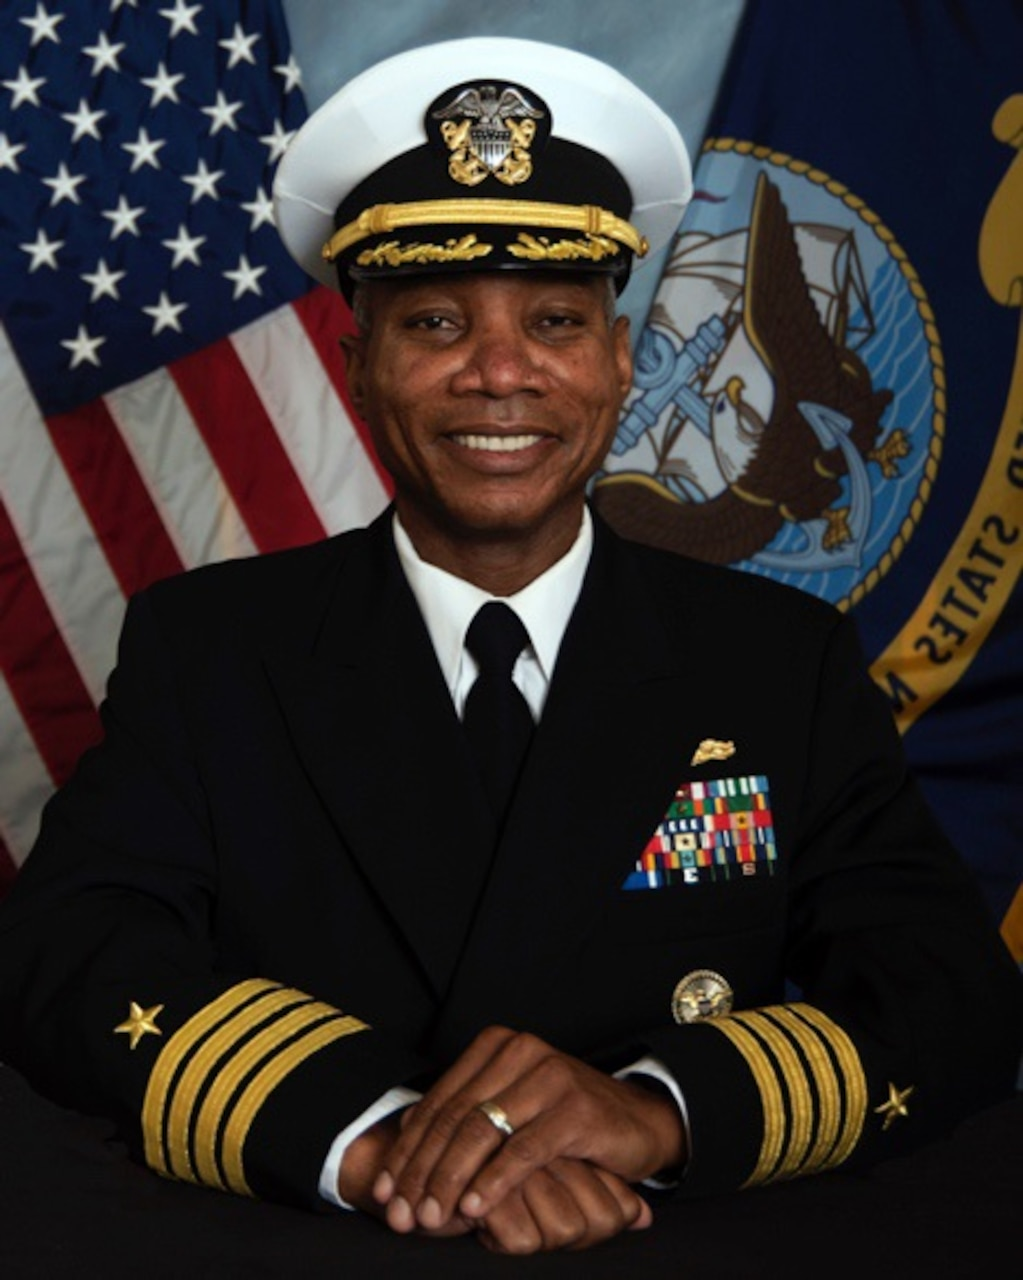 Captain Christopher A. Brown